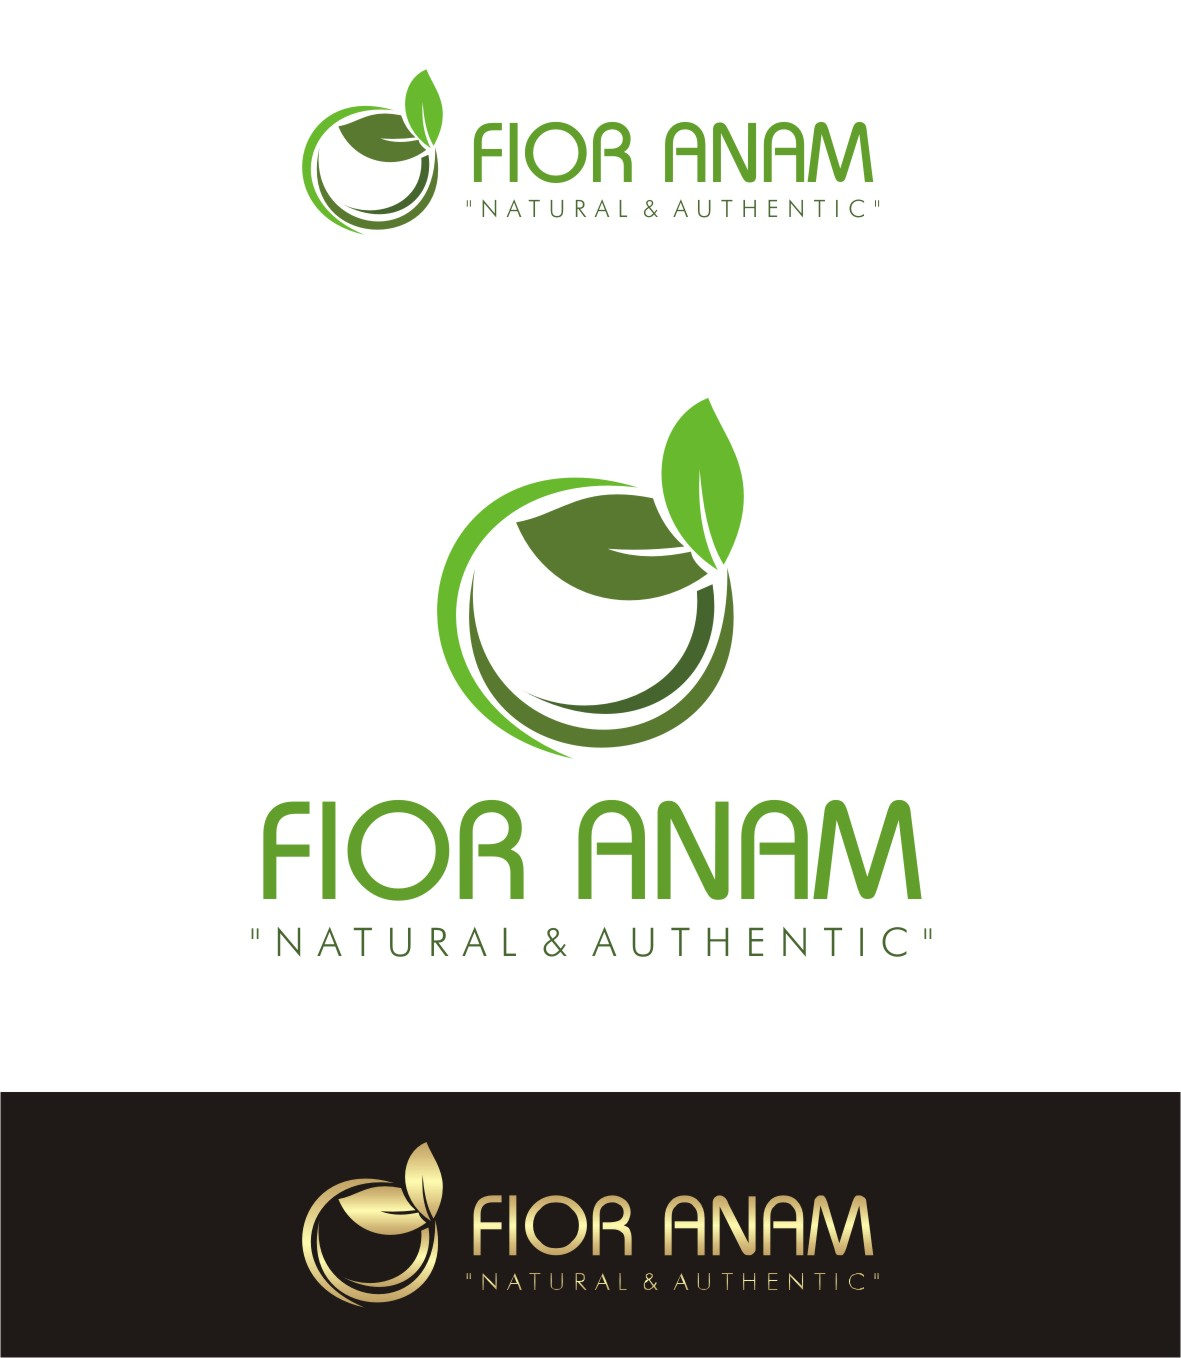 Logo Design by Lynx Graphics - Entry No. 353 in the Logo Design Contest Creative Logo Design for Fior Anam.